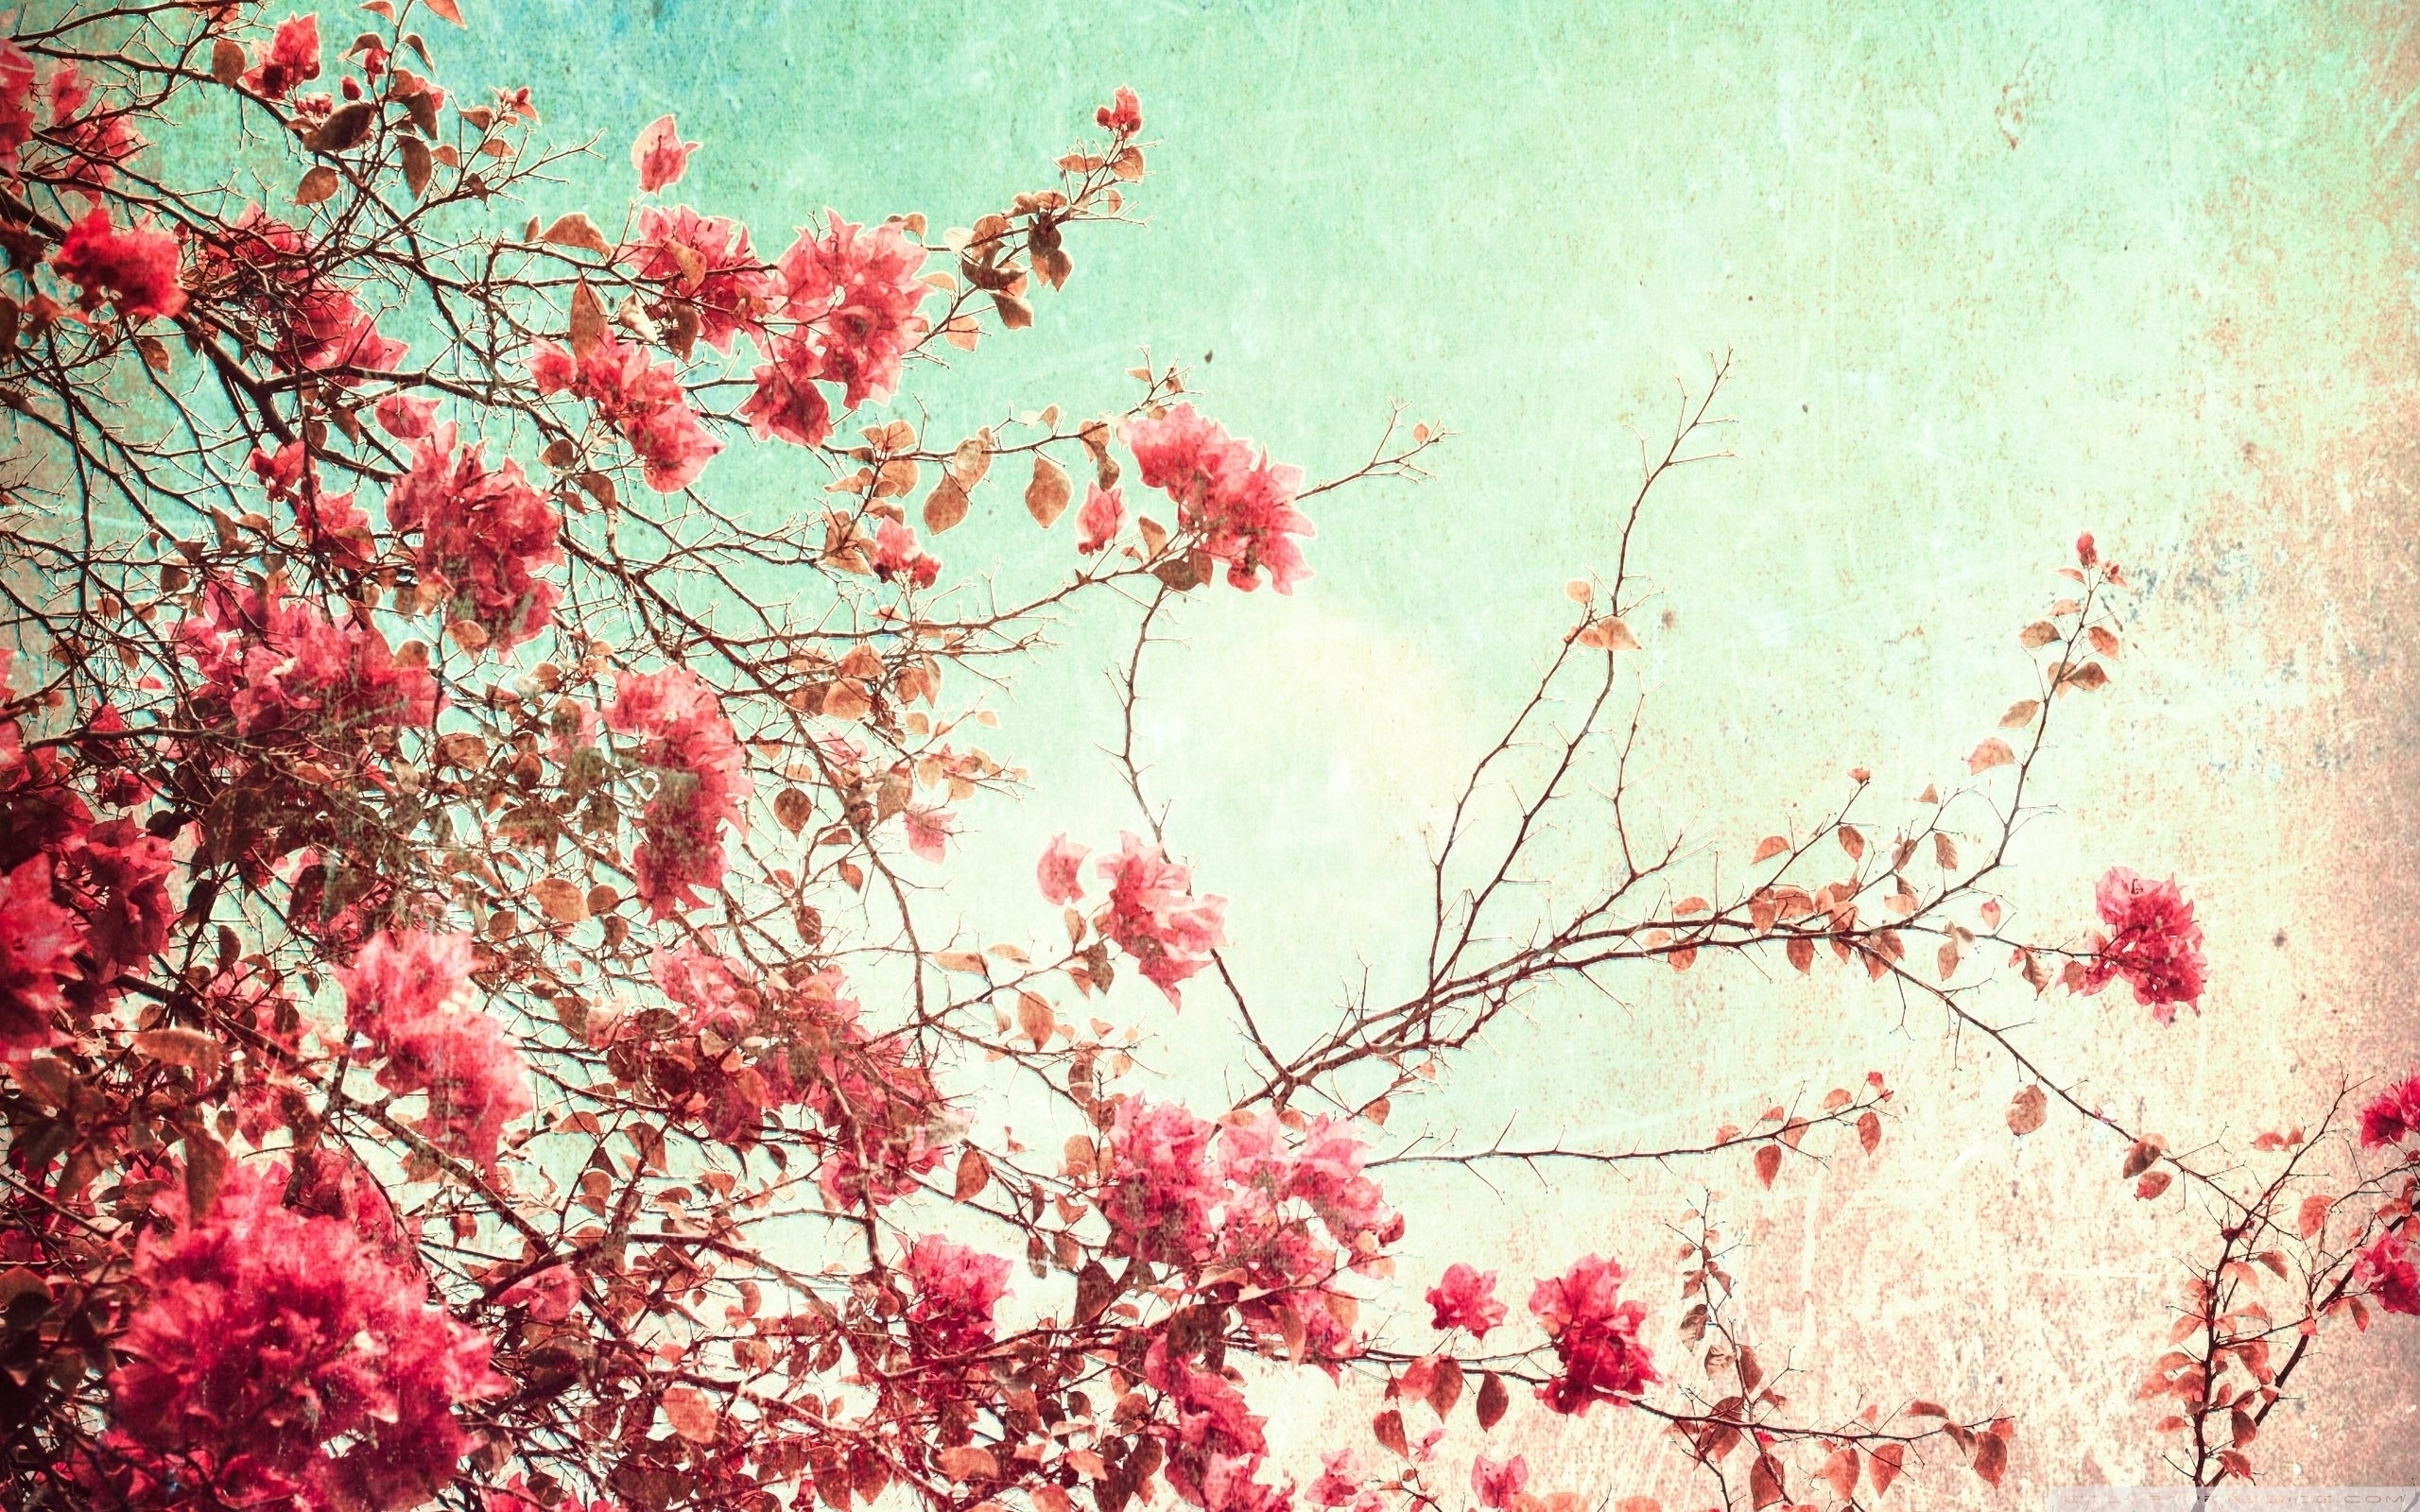 10 latest vintage spring desktop background full hd 1080p for pc desktop